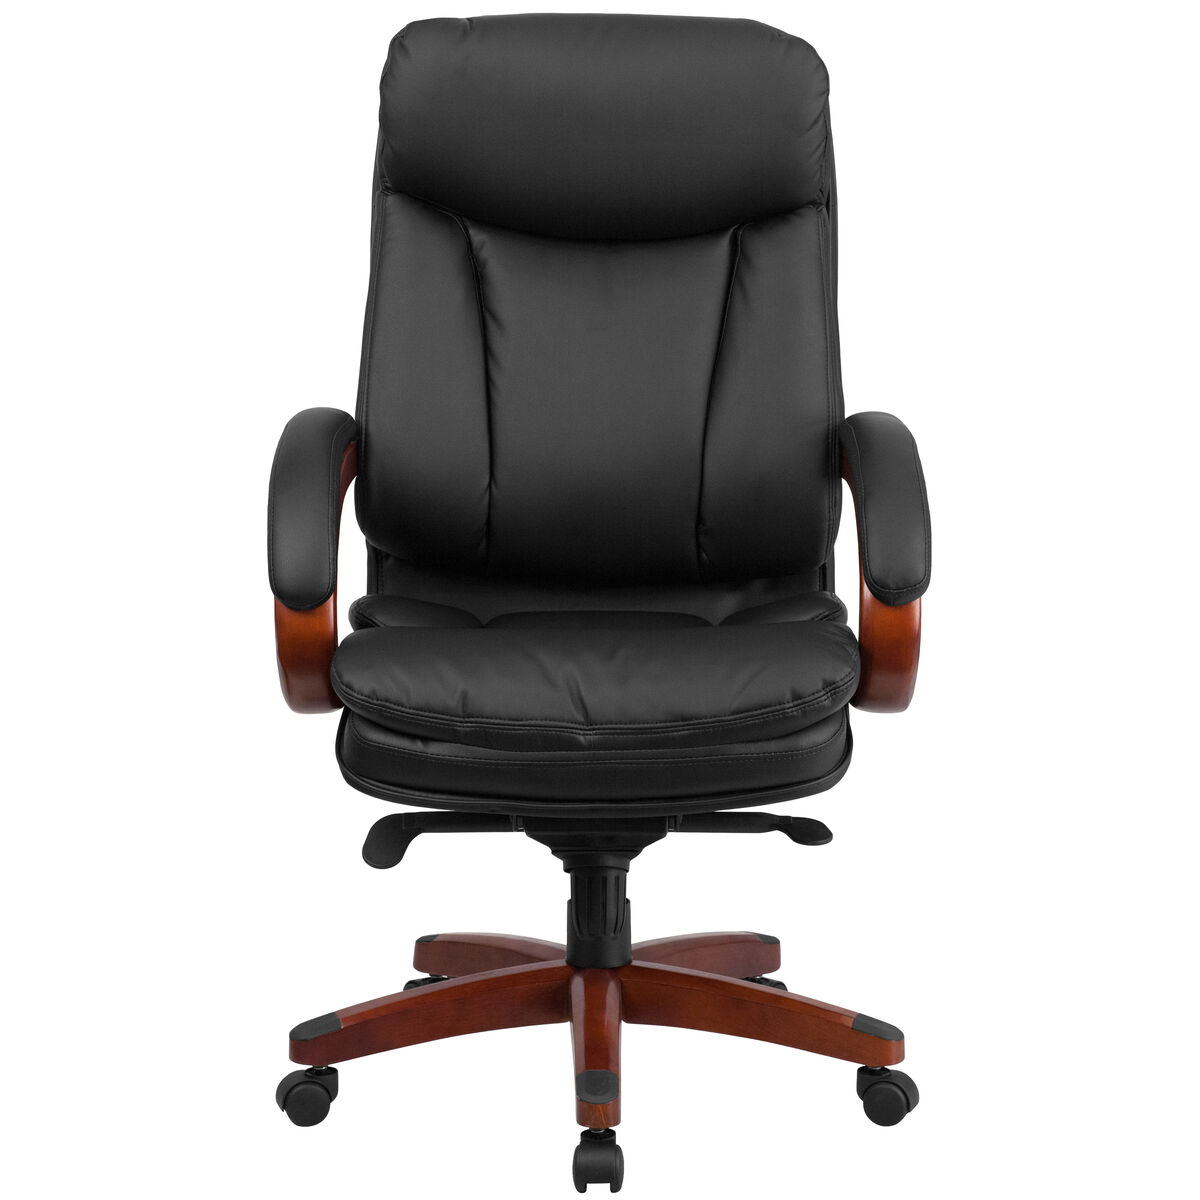 black high back leather chair bt 90171h s gg bizchair com